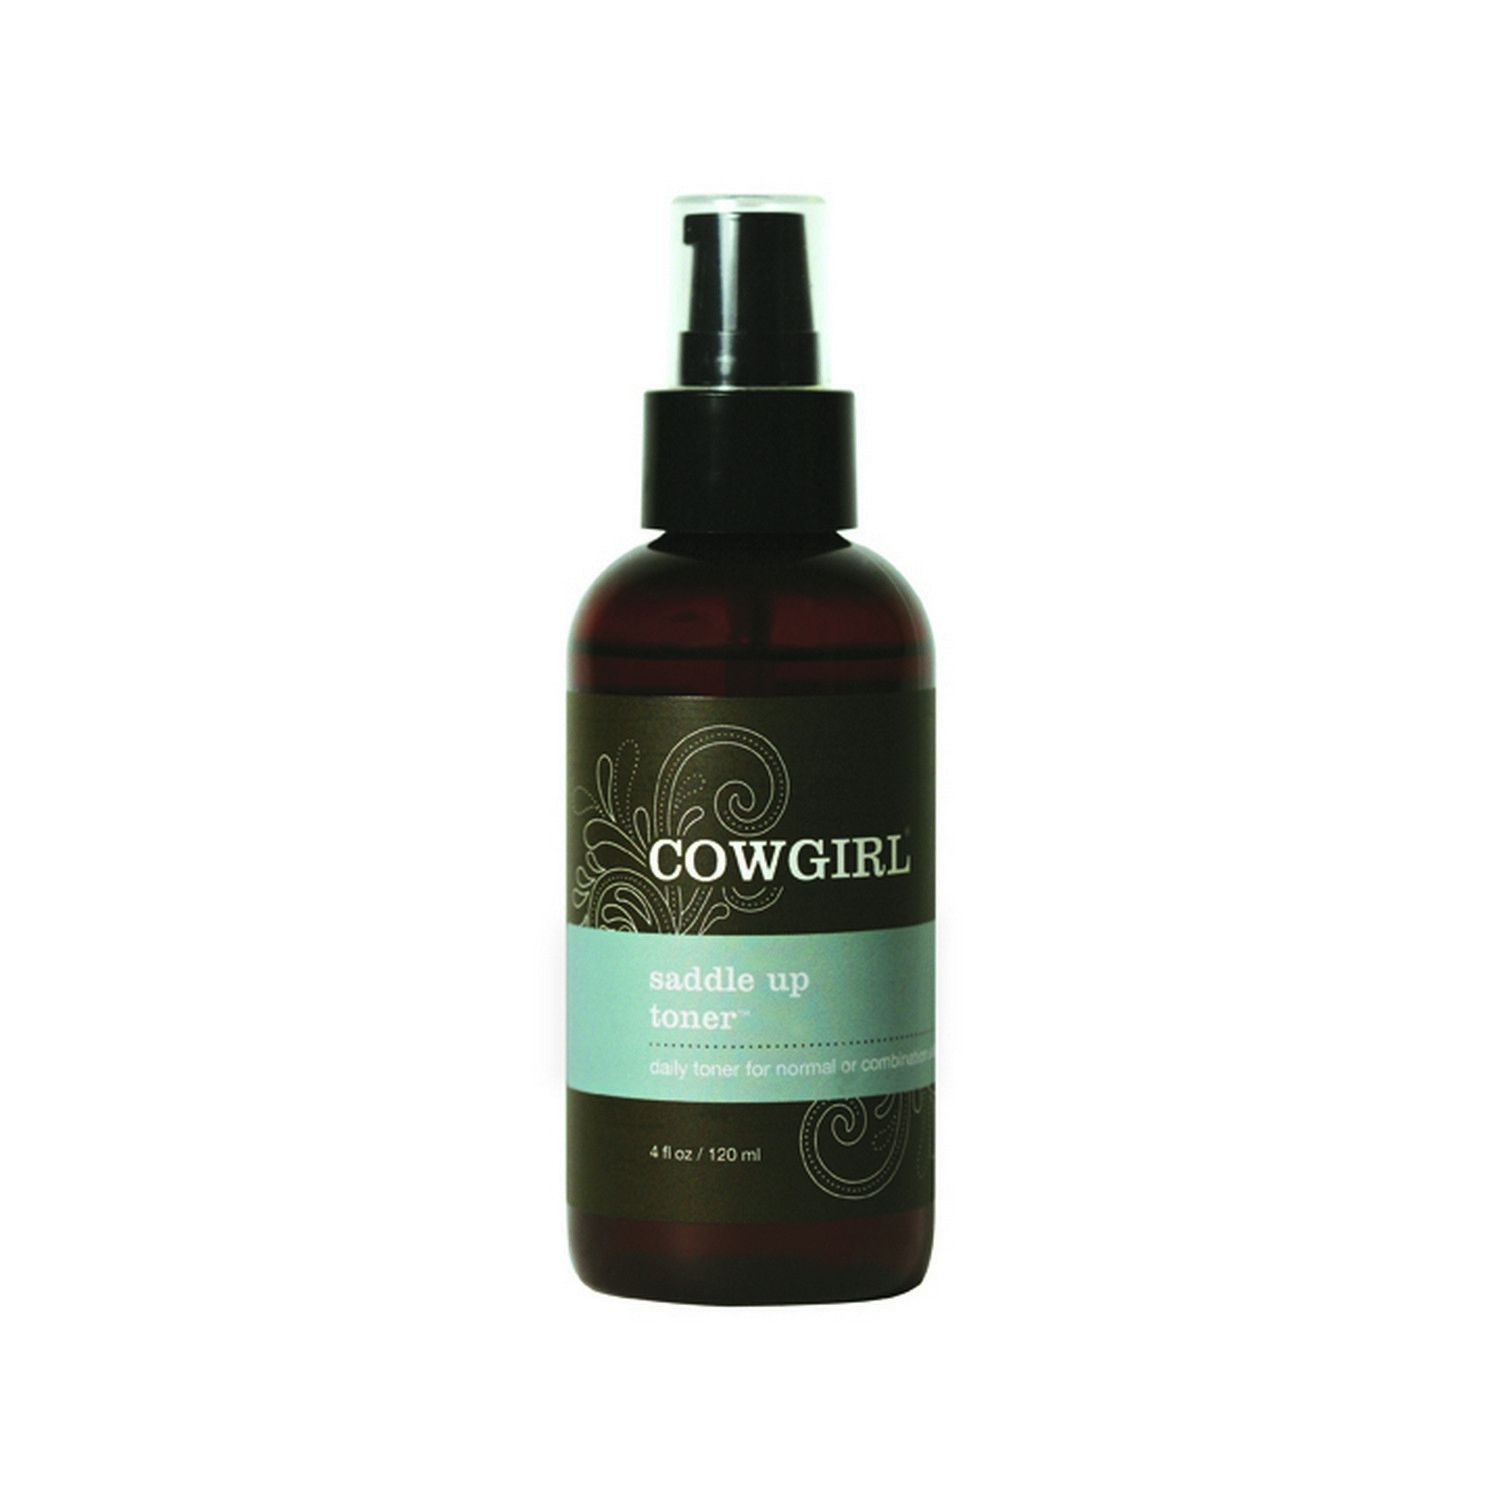 COWGIRL saddle up toner (4 fl oz / 120 ml)